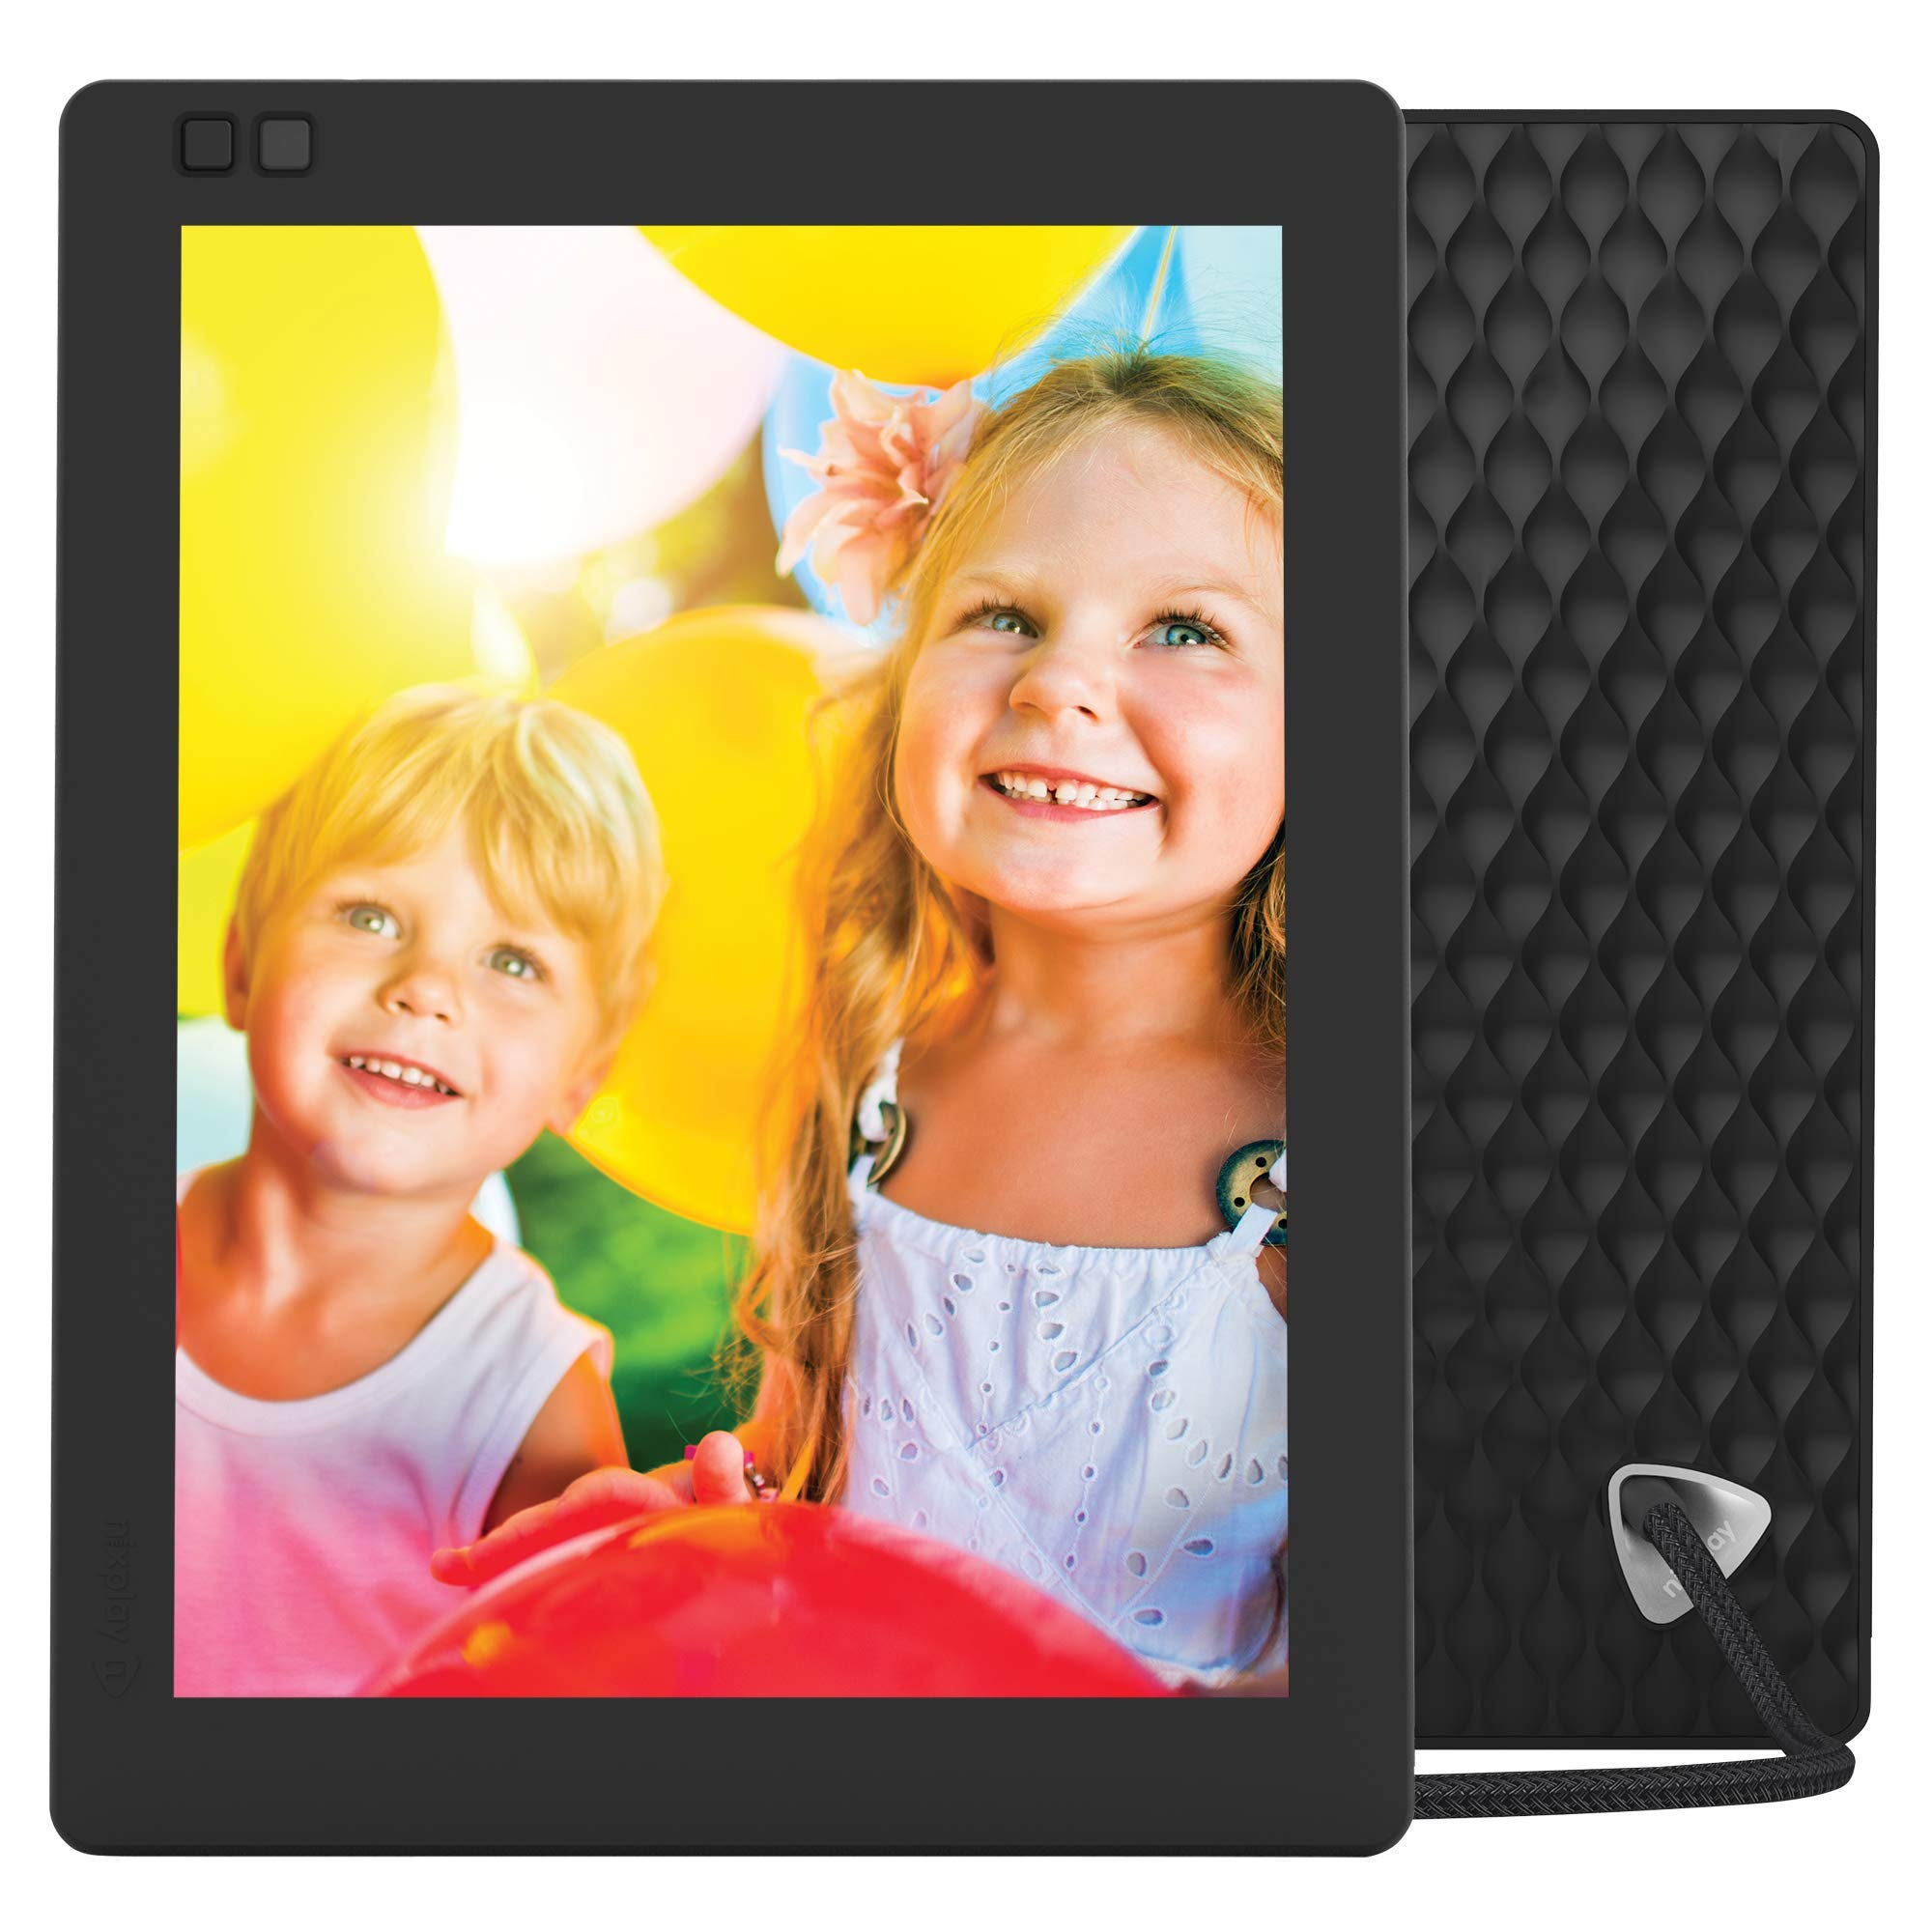 Nixplay Seed Ultra 2K High Definition Wi-Fi 10 Inch Digital Picture Frame, with E-Mail, iPhone & Android App, Free 10GB Online Storage, Google Photos, Facebook, Motion Sensor by nixplay